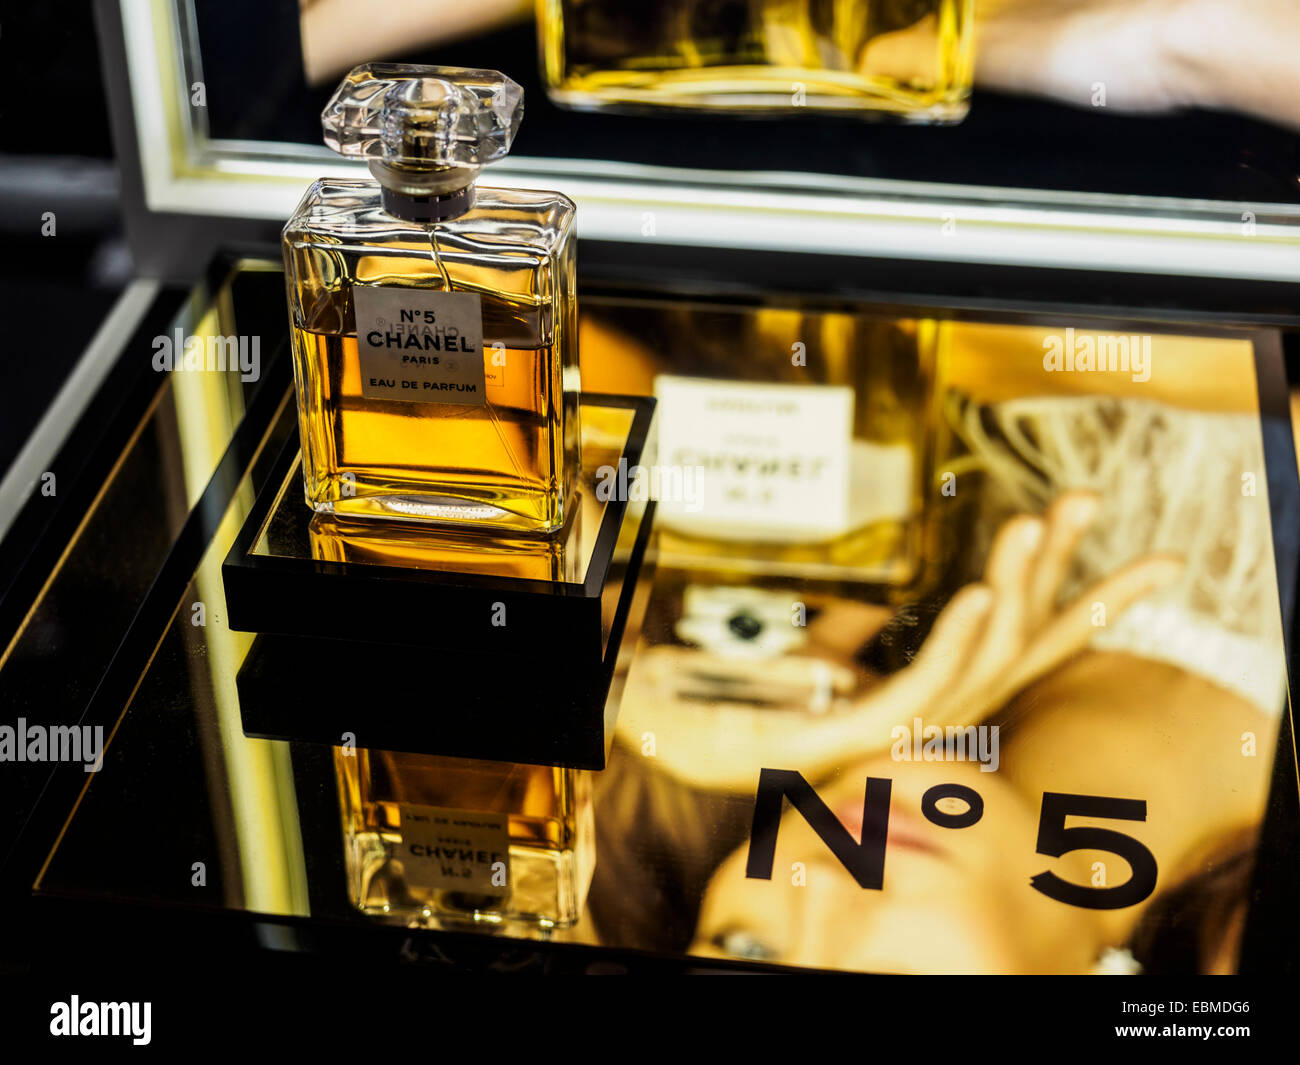 Chanel Perfumes Photos Chanel Perfumes Images Alamy